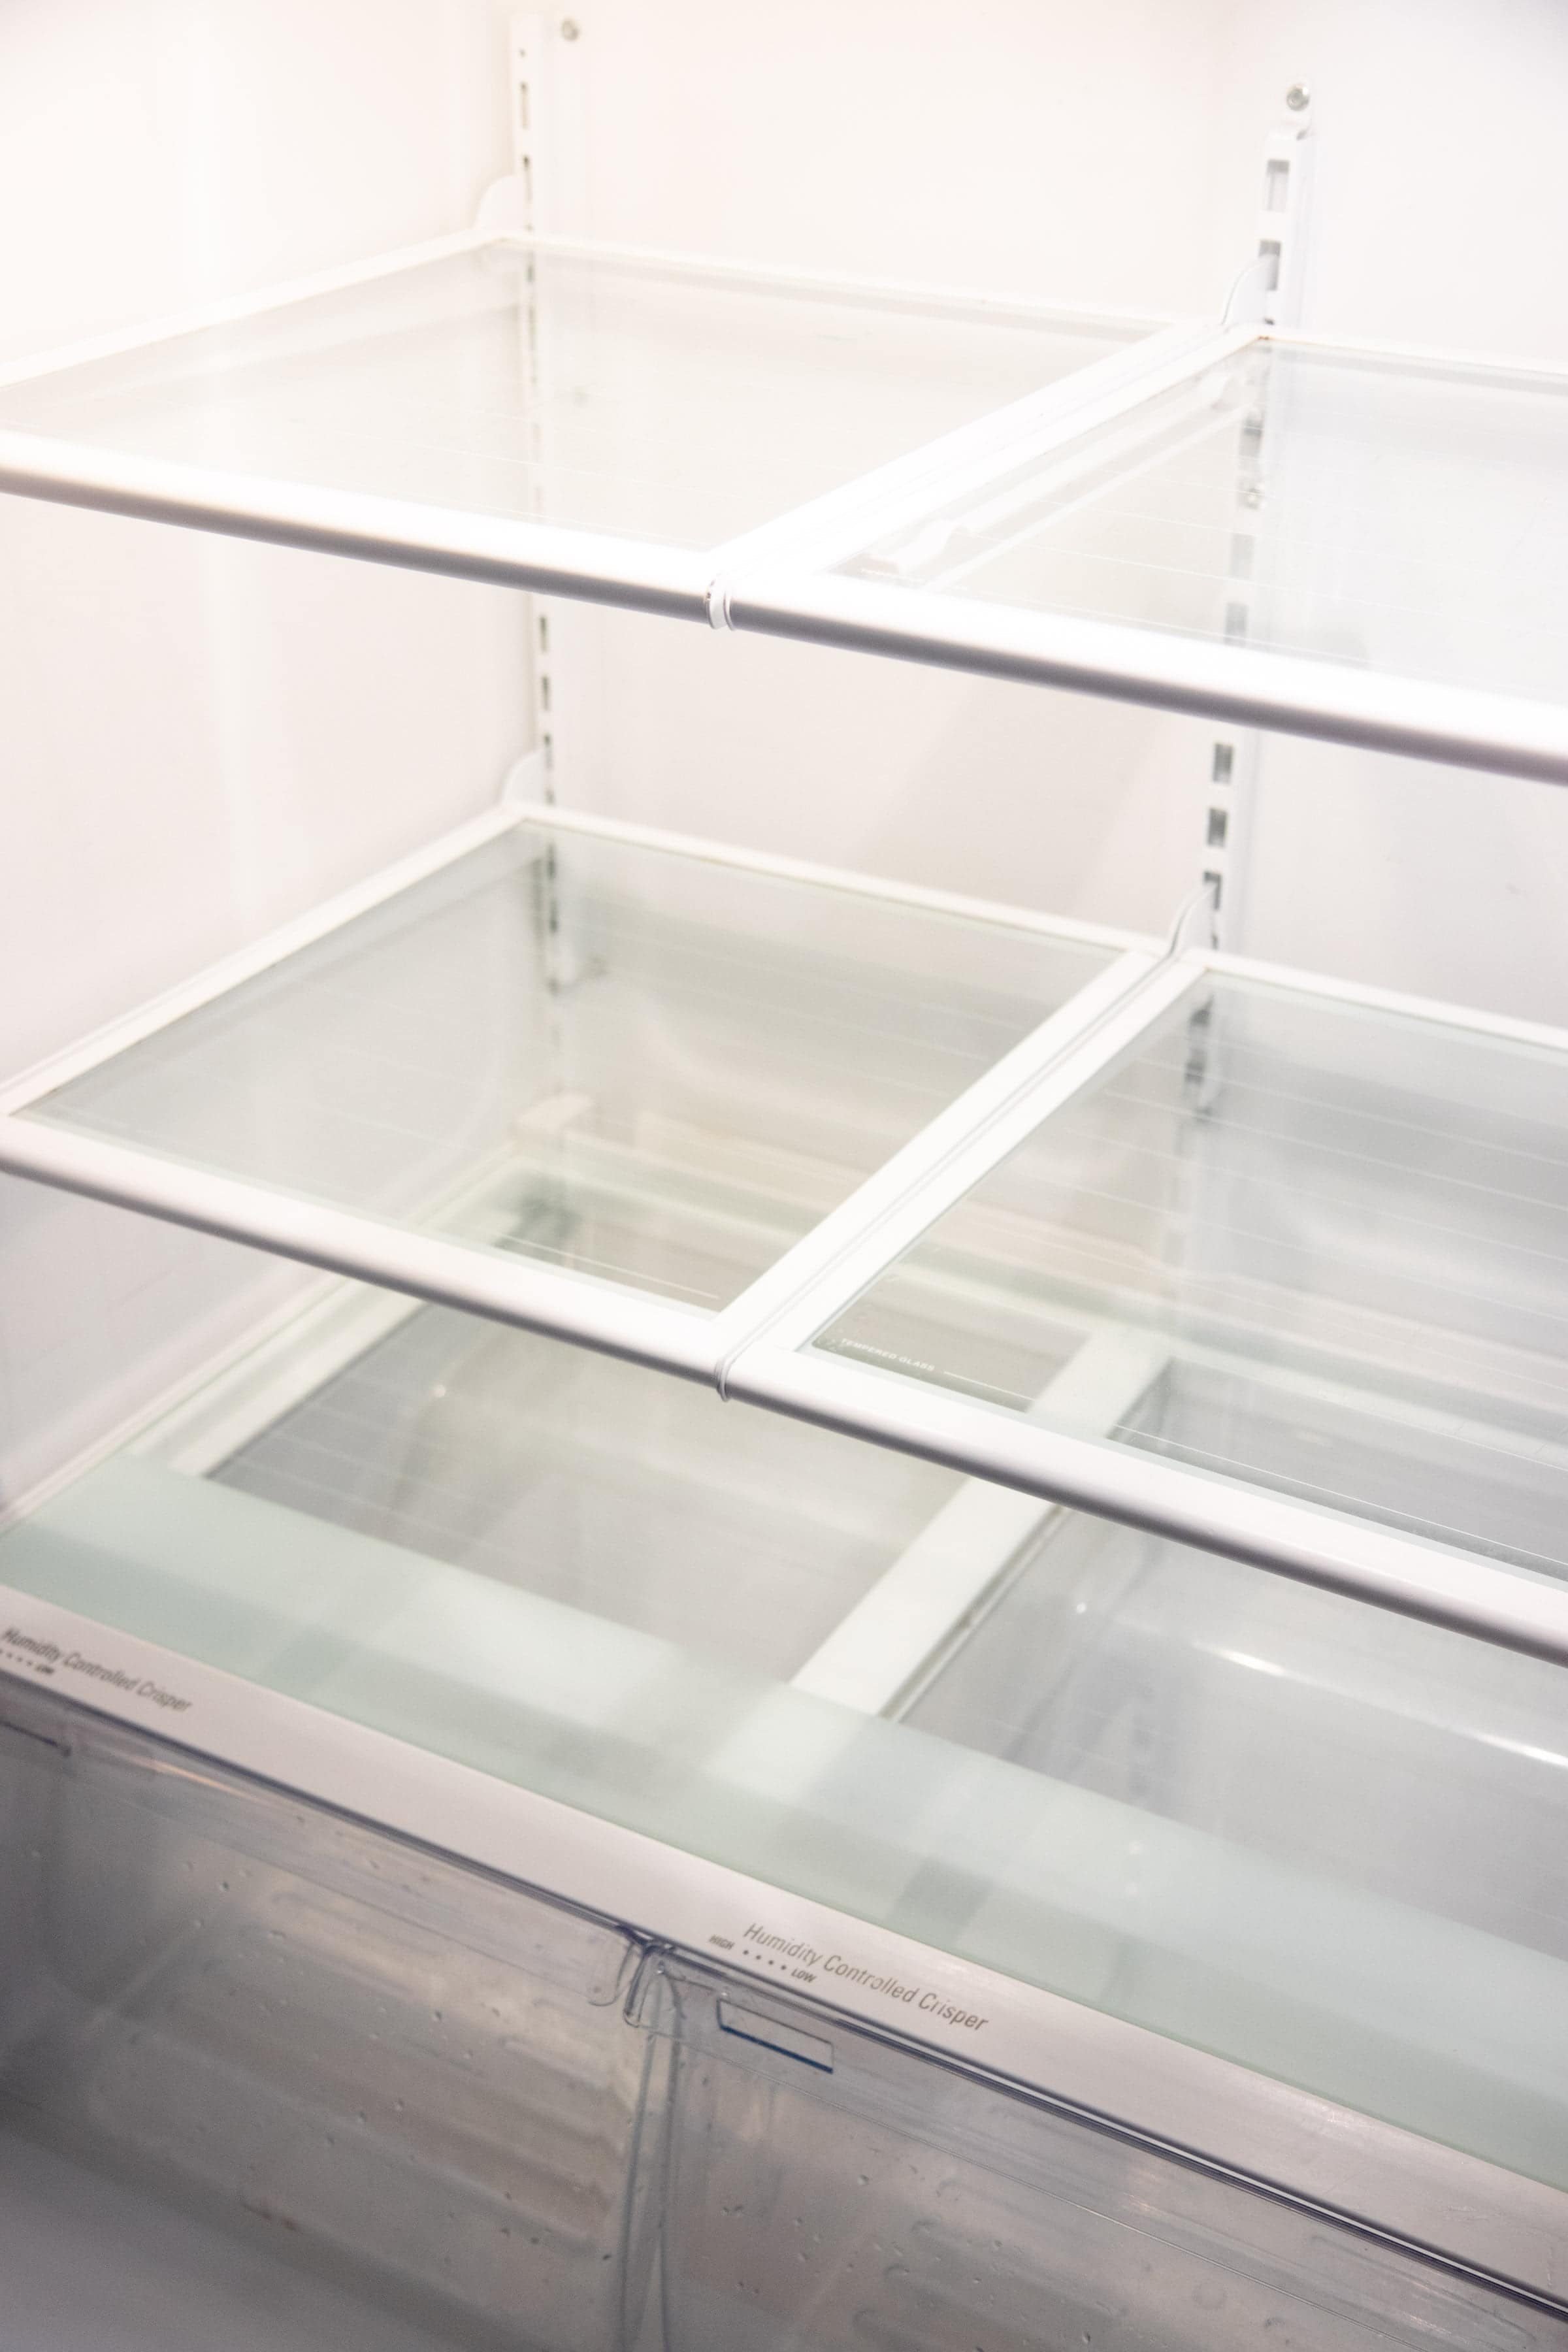 Empty refrigerator shelves that have been cleaned